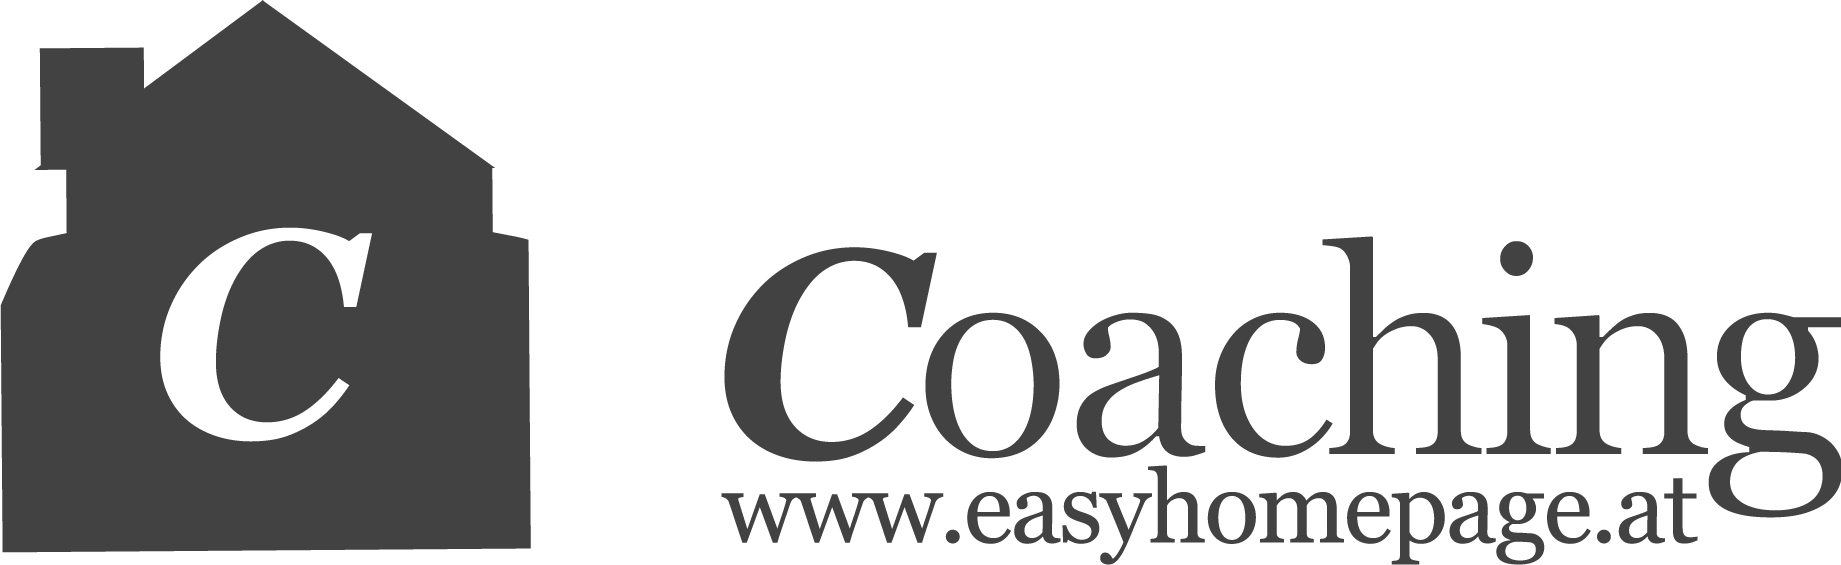 Coaching | easyhomepage.at